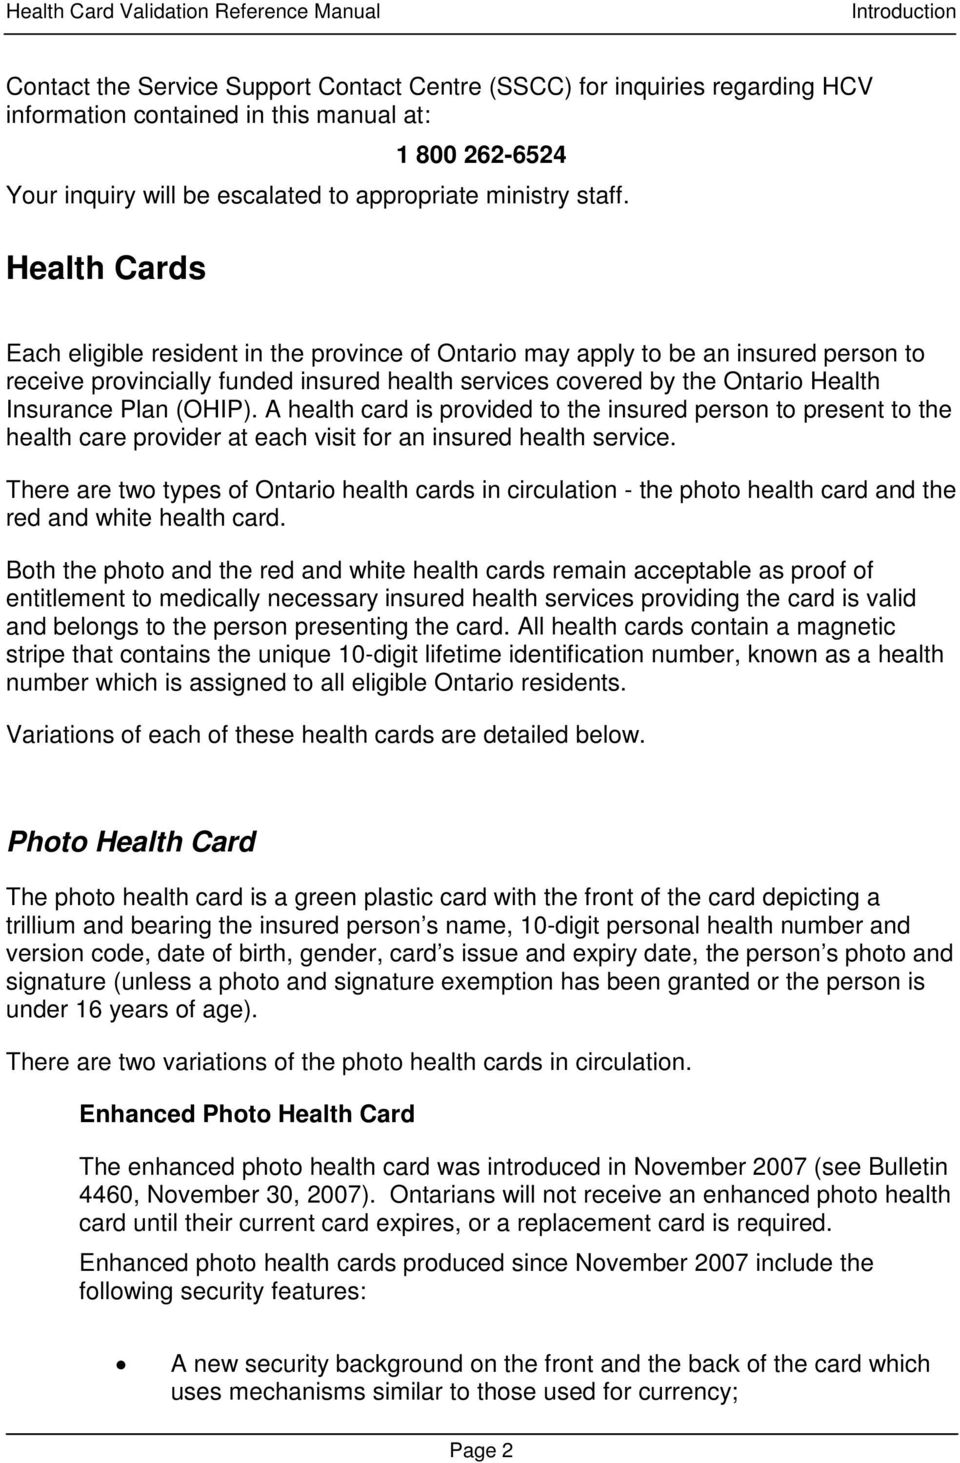 Health Cards Each eligible resident in the province of Ontario may apply to be an insured person to receive provincially funded insured health services covered by the Ontario Health Insurance Plan